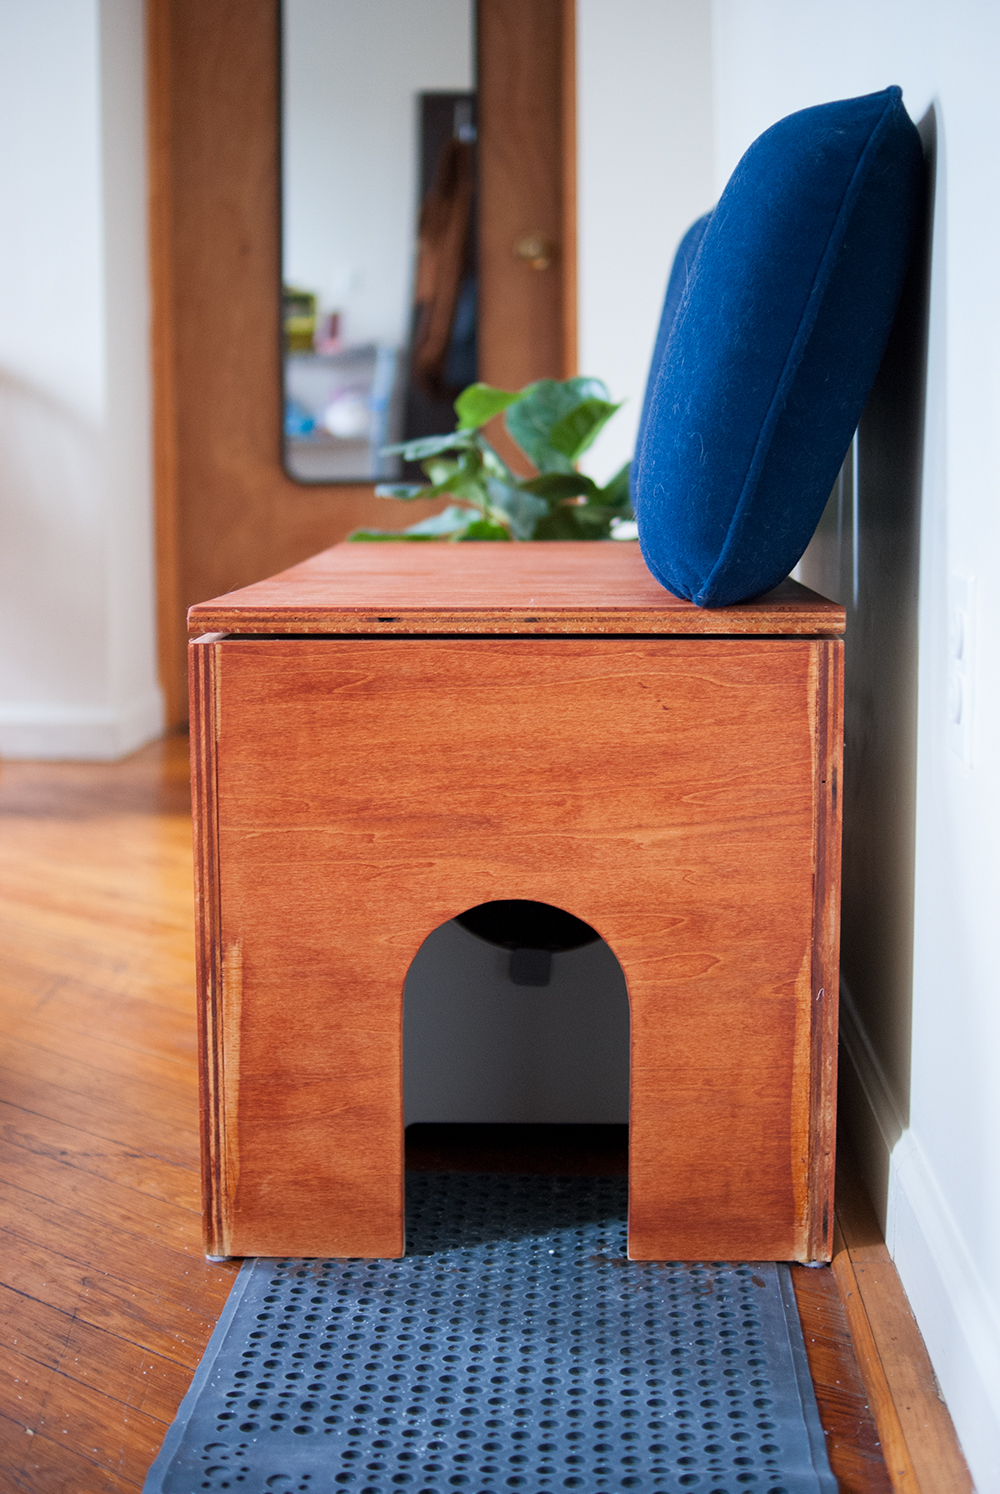 Make a DIY litter box cover bench for your cat and yourself! Covers up your kitty's litter box and supplies, while adding additional functionality by adding seating to your home - #DIY #kitty #catDIY #litterbox #litterboxDIY #DIYbench #litterboxbench